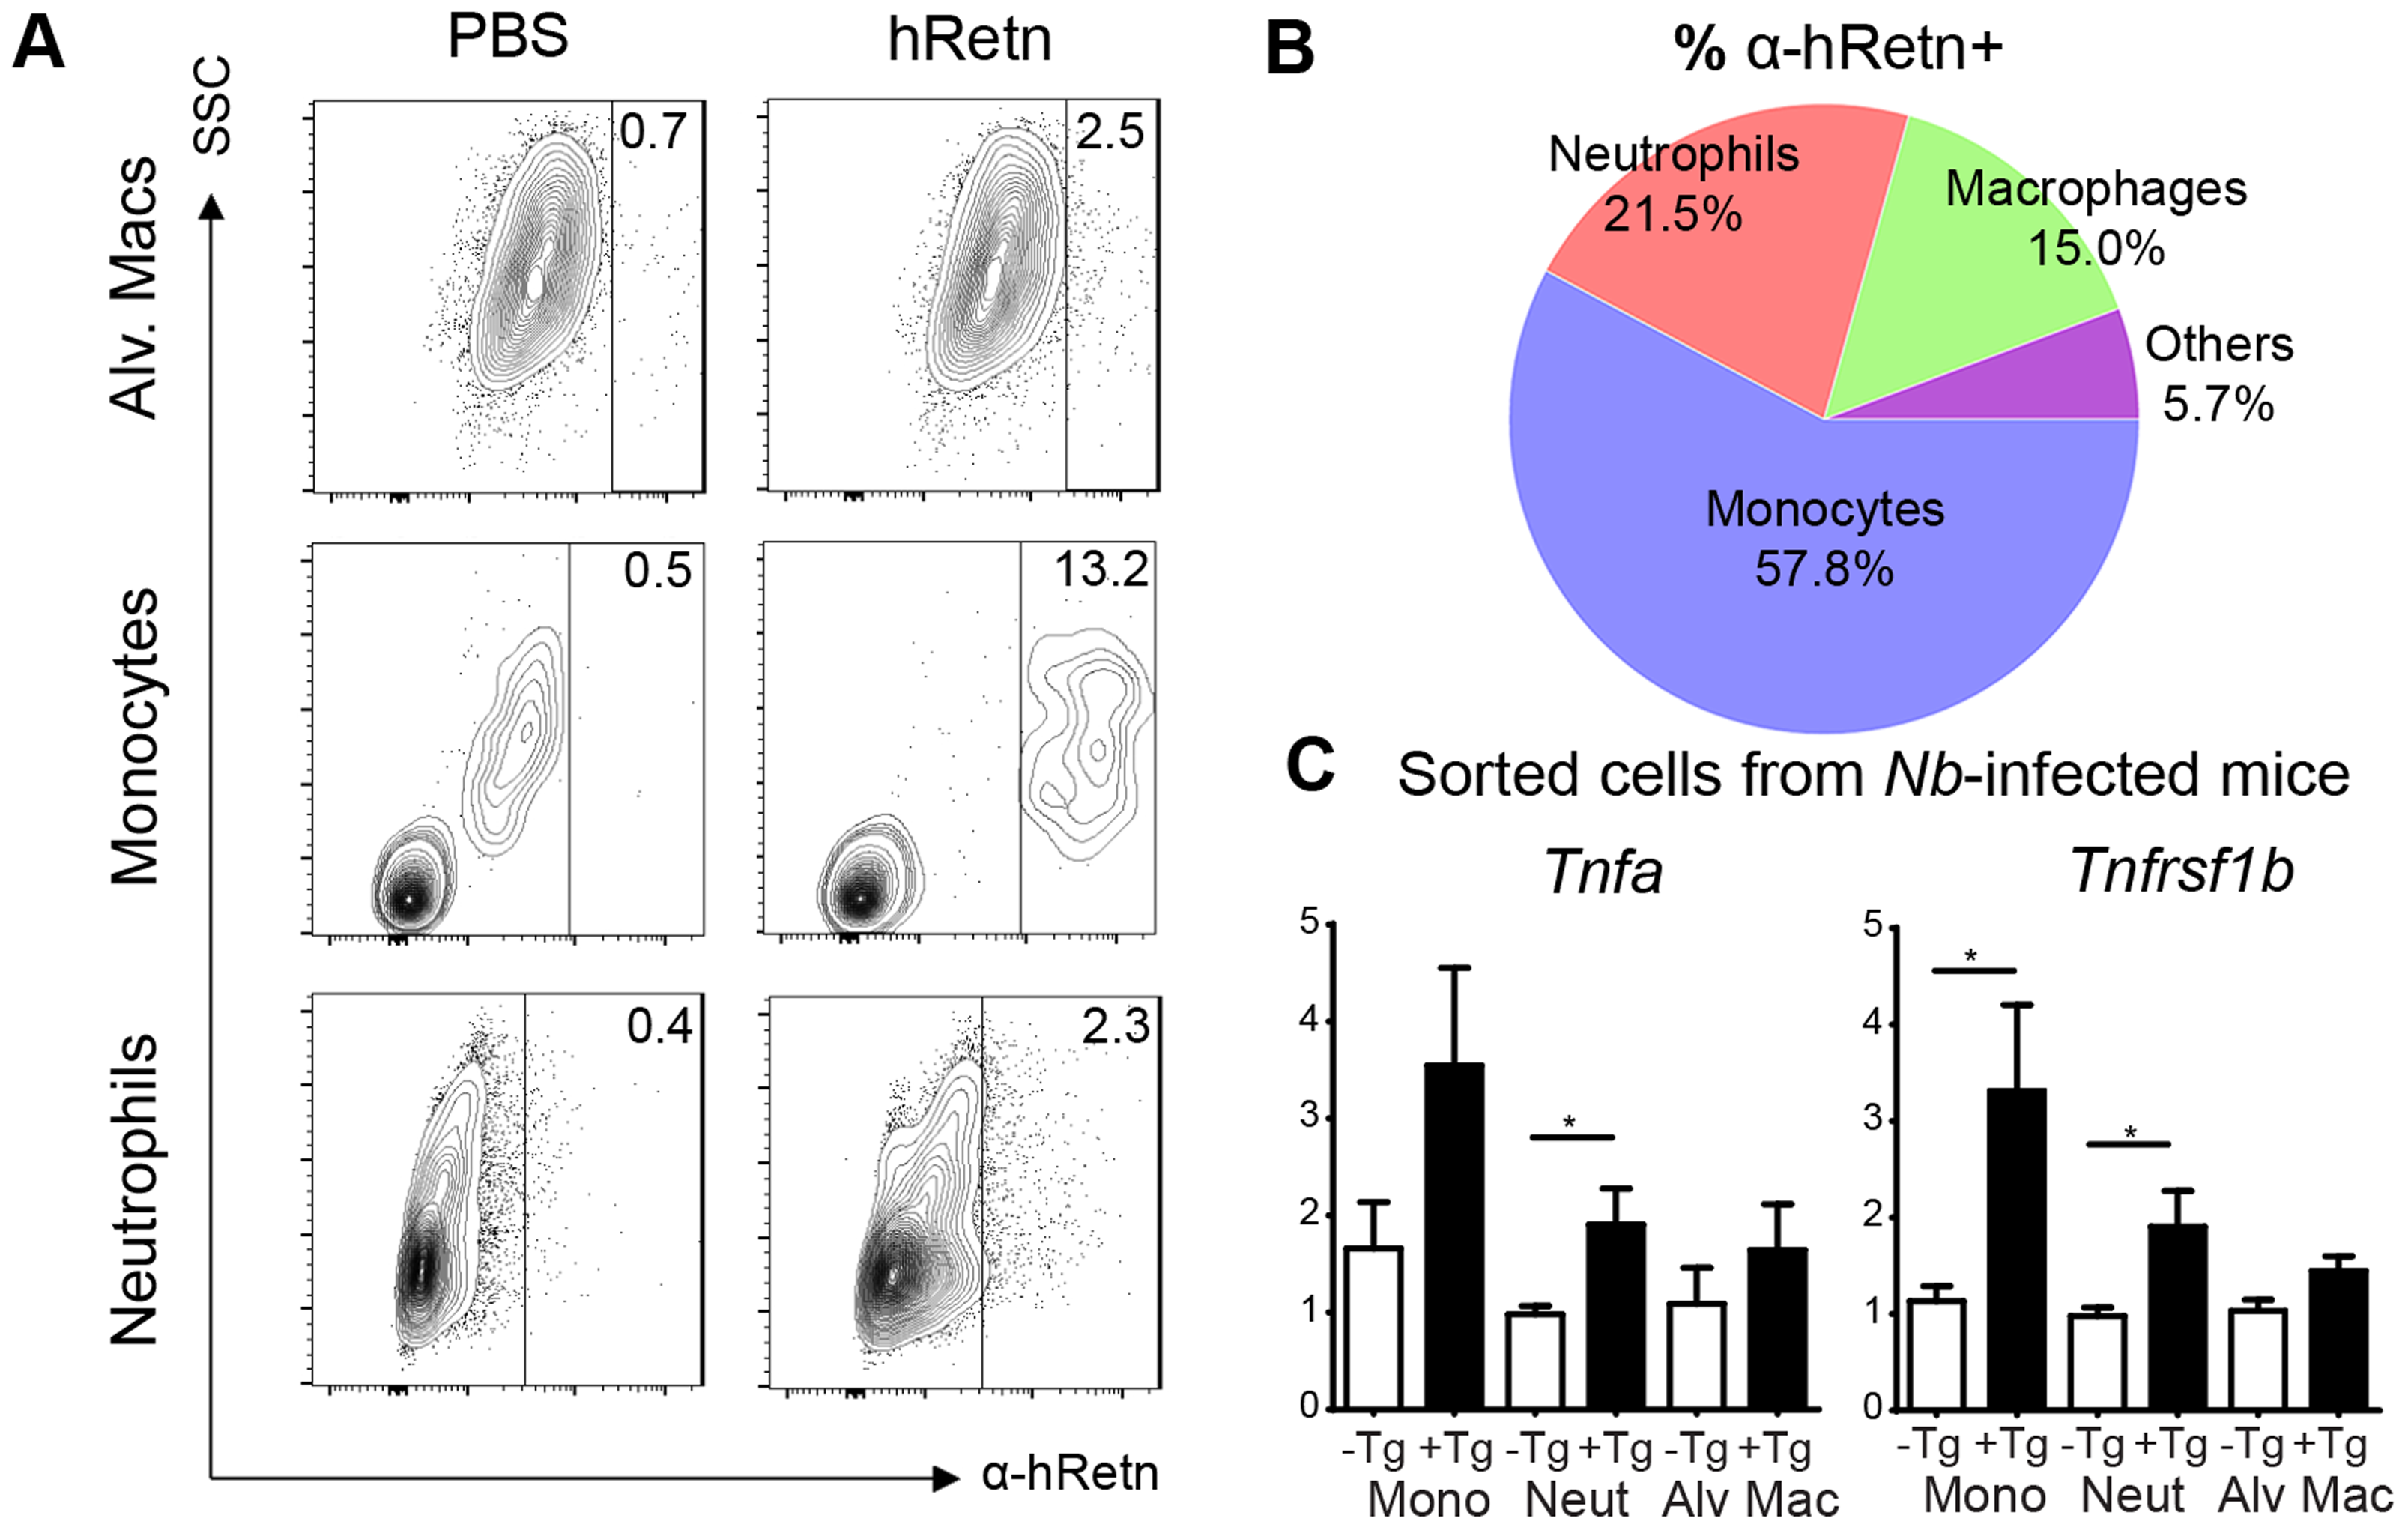 Monocytes and neutrophils are the main cellular targets of hResistin during <i>Nb</i> infection.